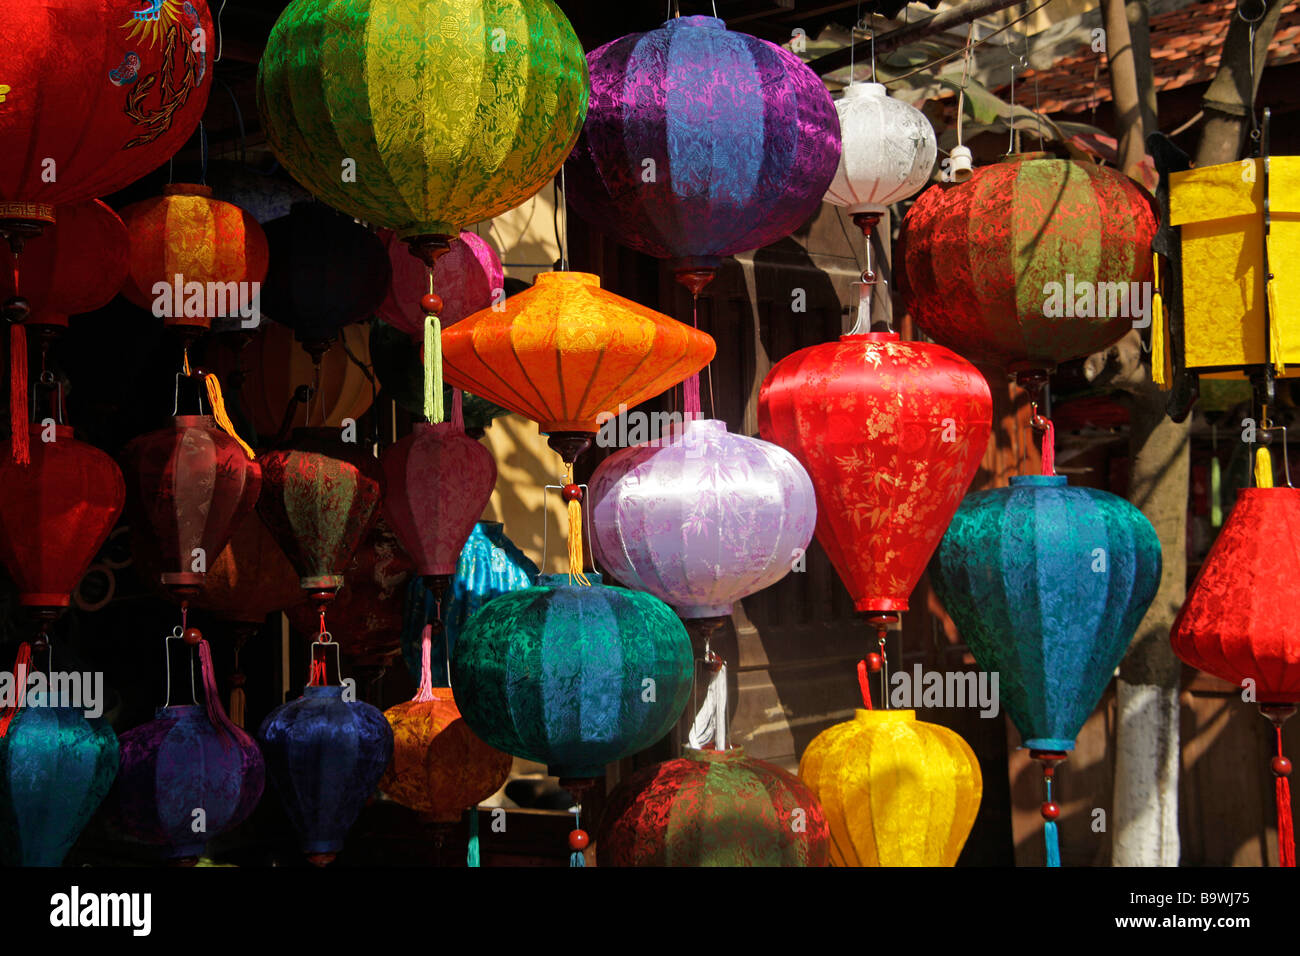 popular with tourists the colourful silk lanterns of Hoi An Vietnam - Stock Image